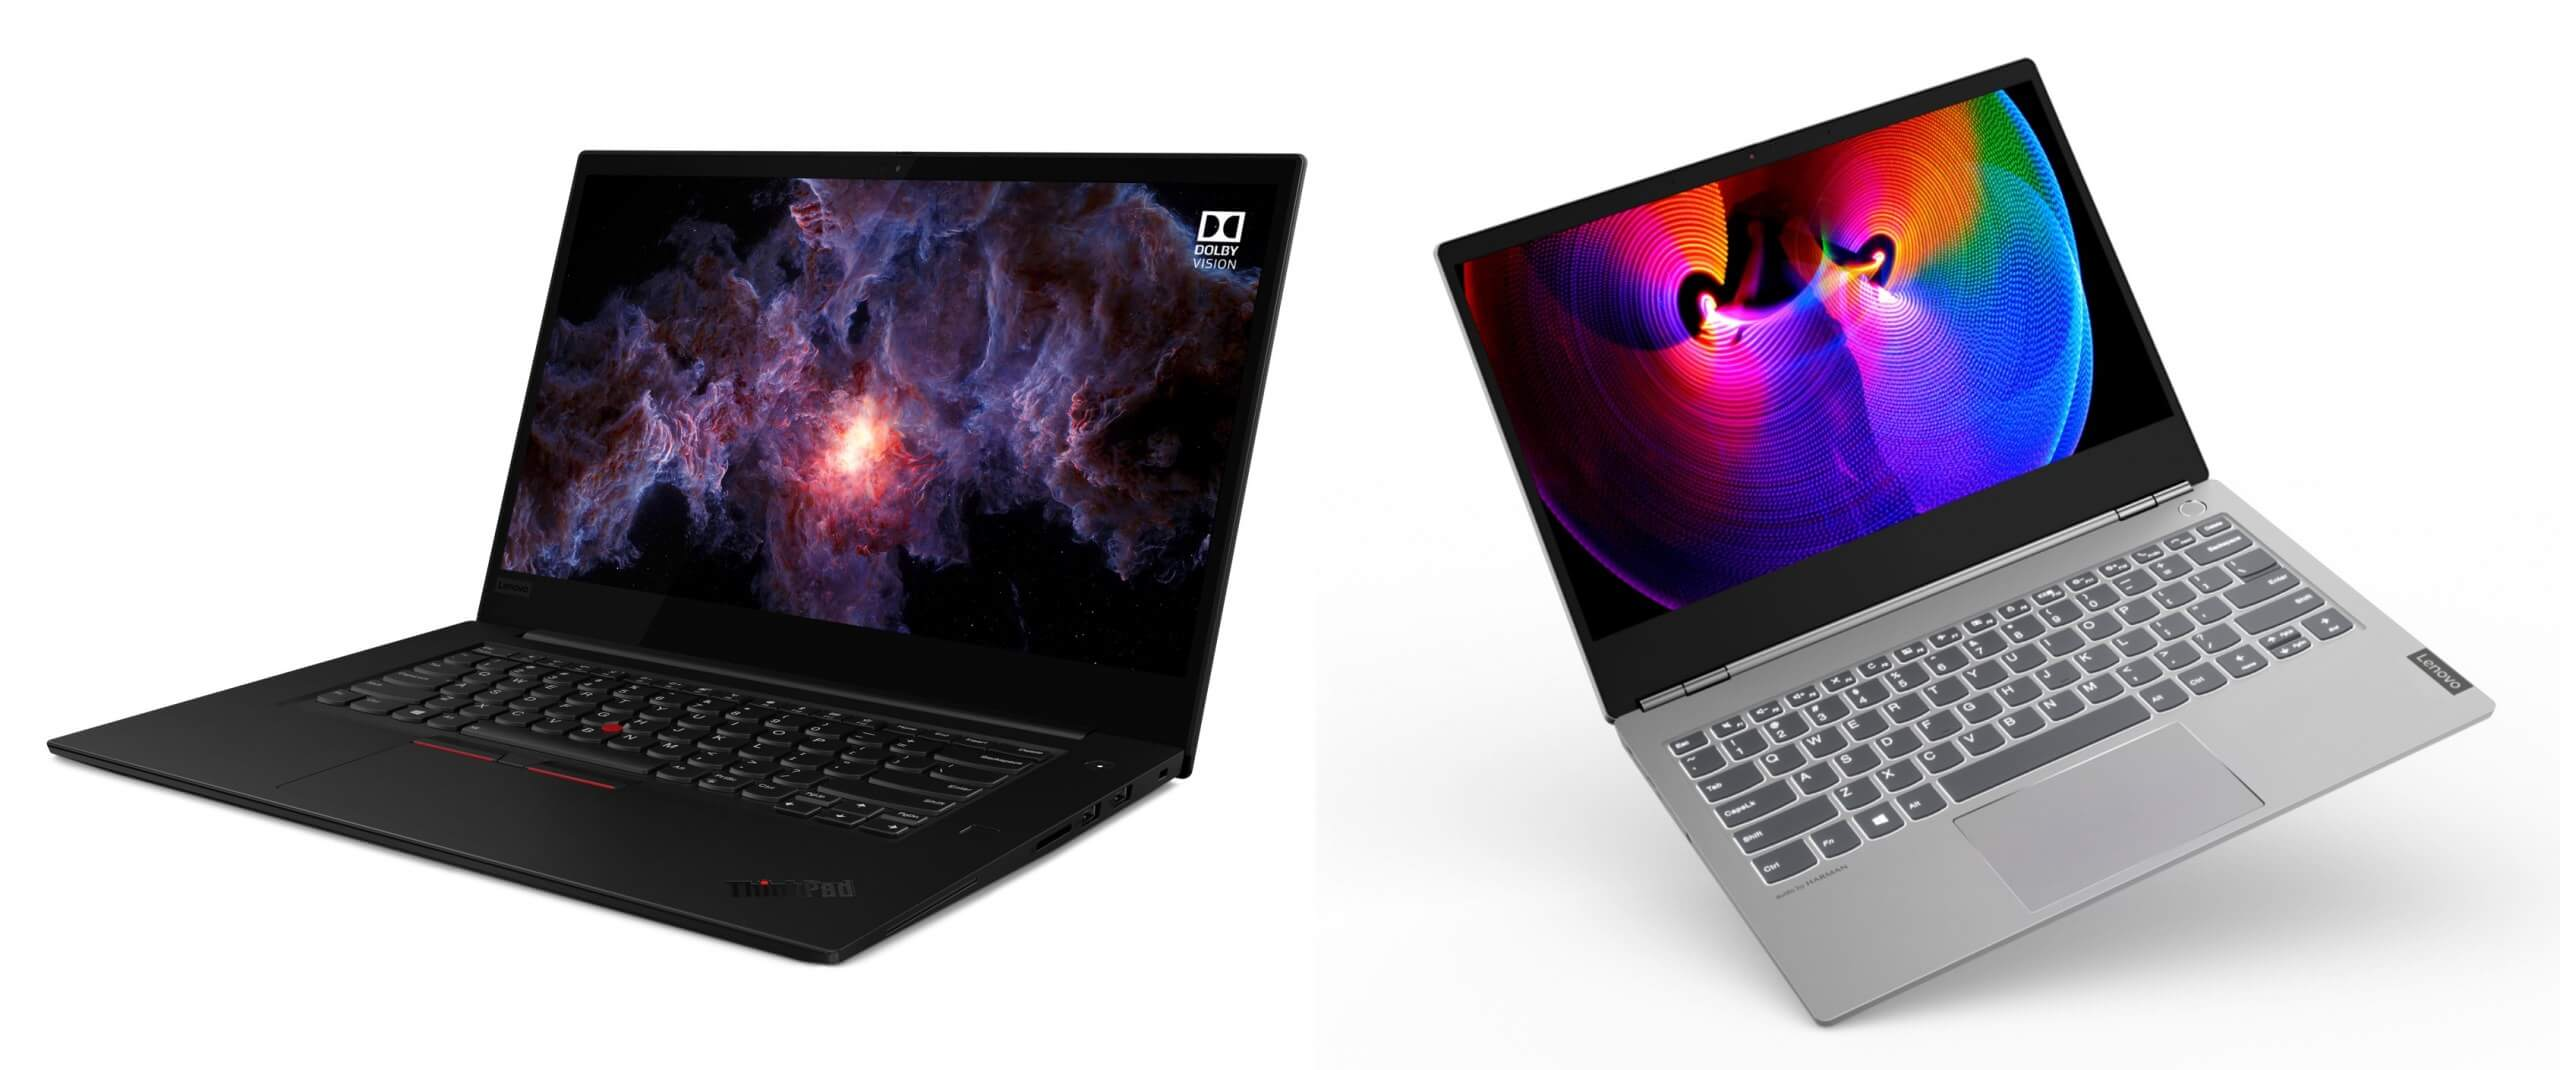 Lenovo launches new ThinkPad X1 Extreme, looks beyond the PC